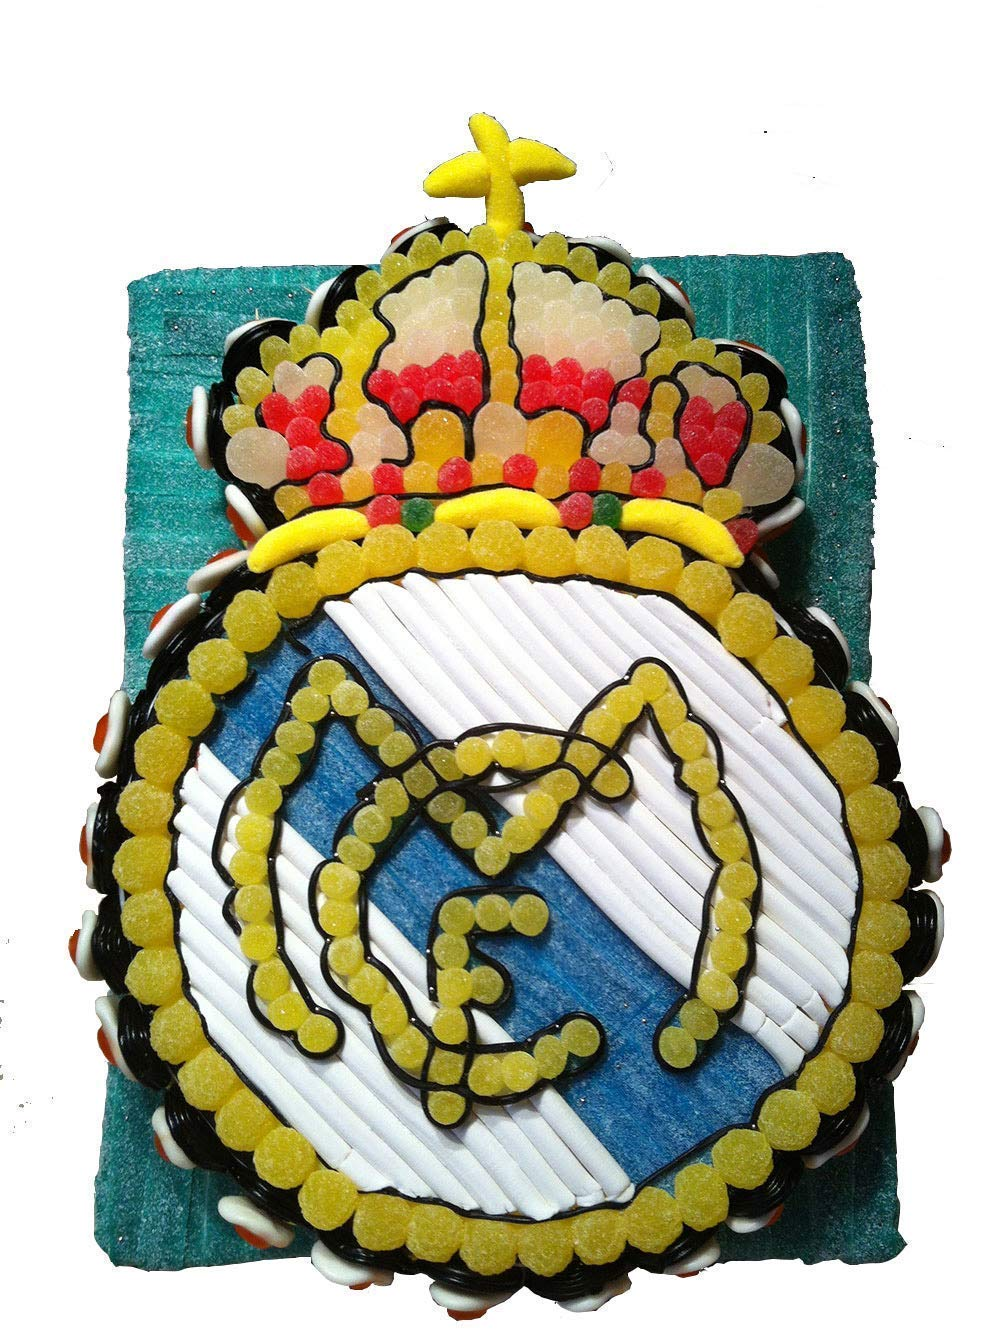 Tarta chuches Real Madrid futbol: Amazon.es: Handmade